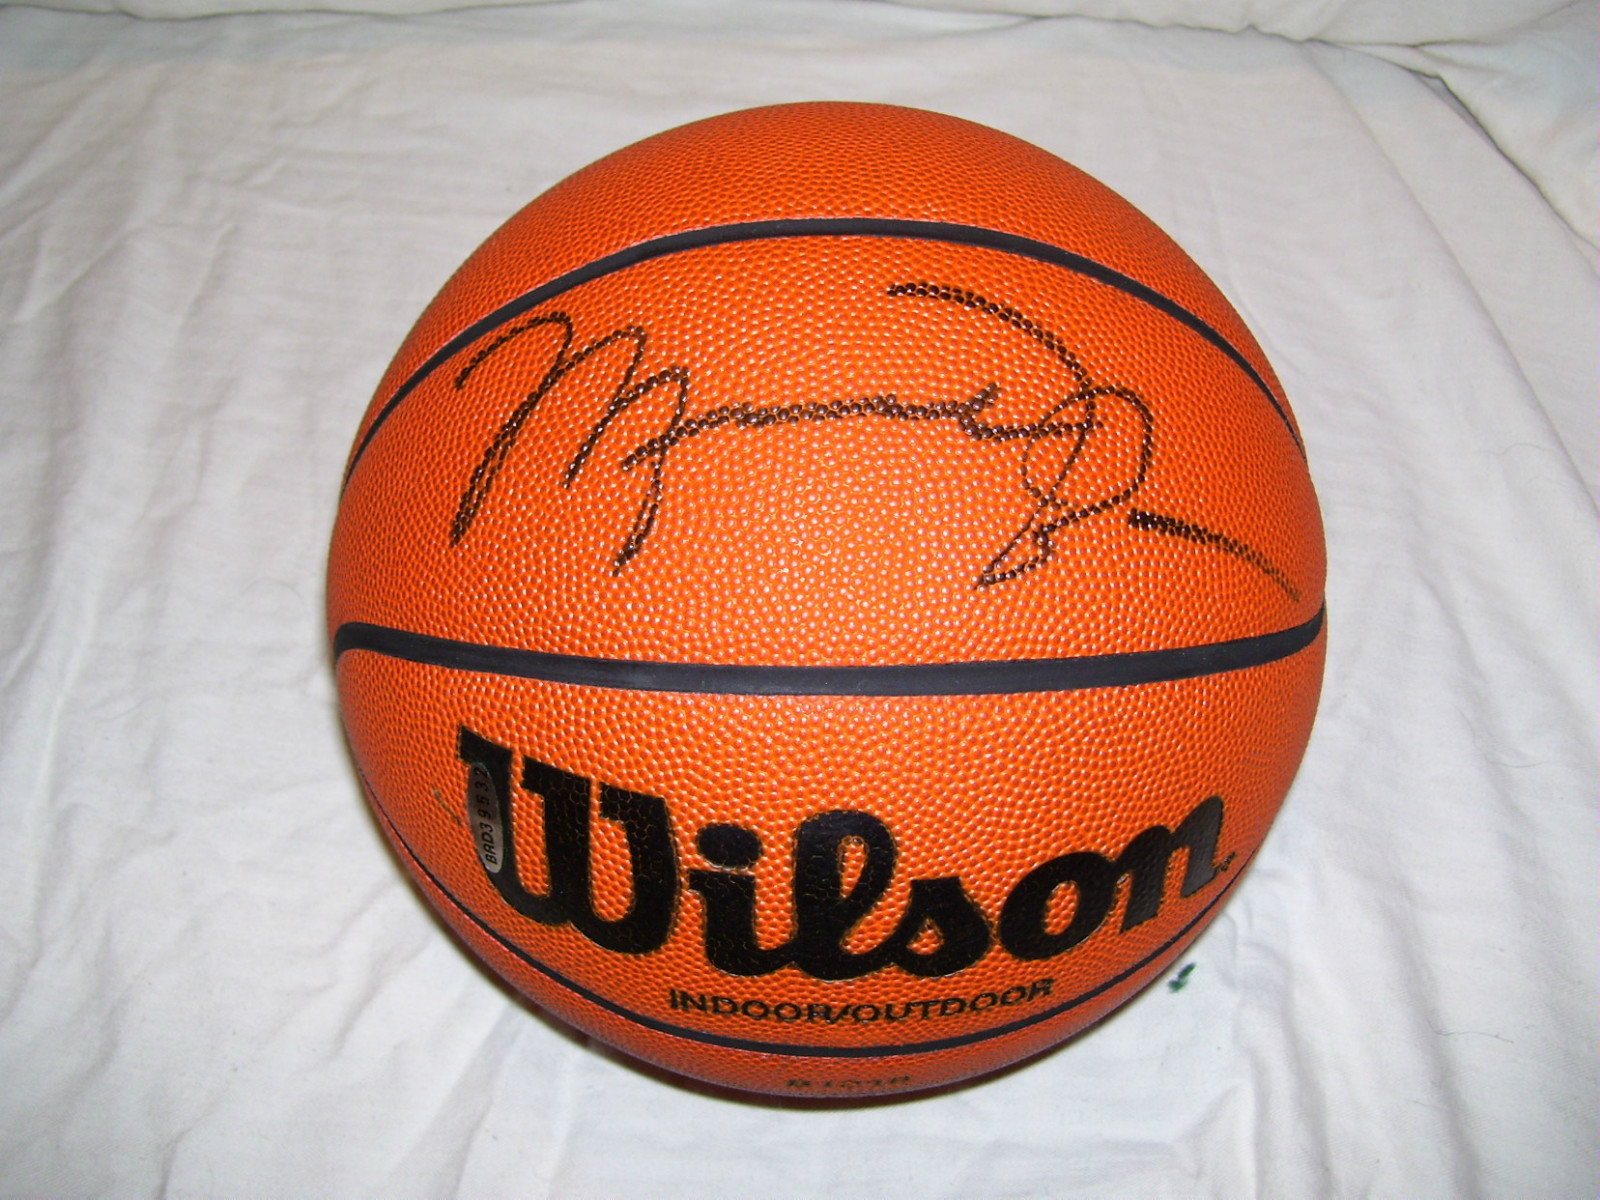 c1b65c63d9e4 Signed Basketball Pricing  Active Listings for Michael Jordan Signed  Basketballs